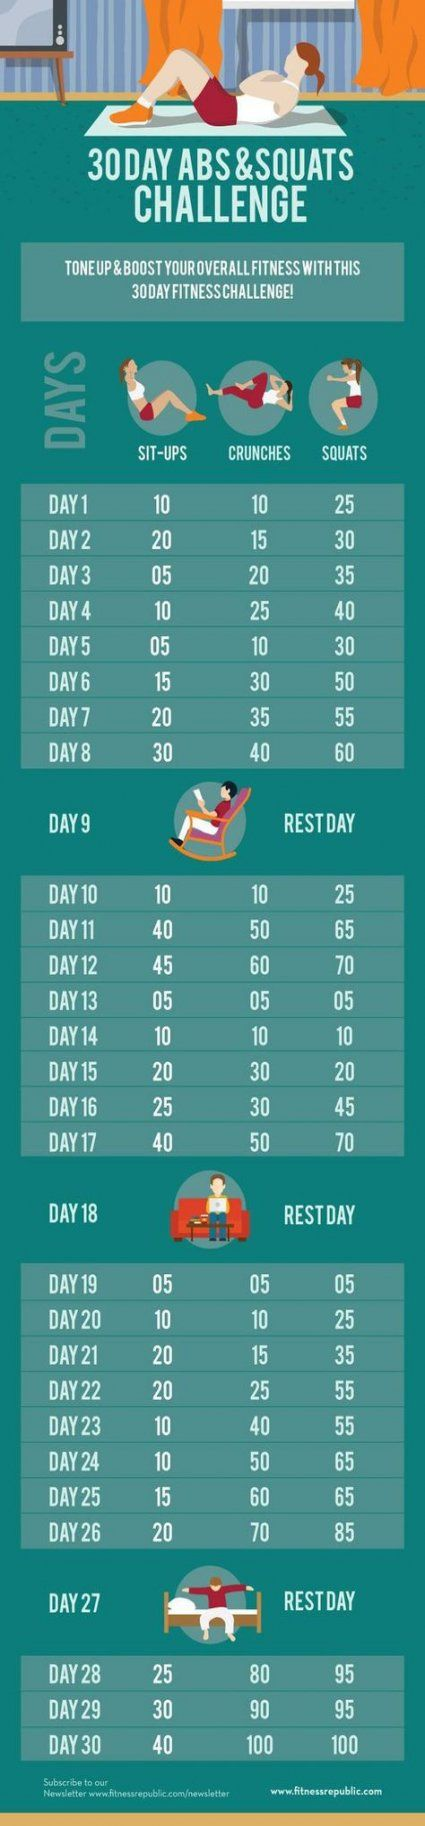 Fitness abs women motivation lower ab workouts 23 new ideas #motivation #fitness